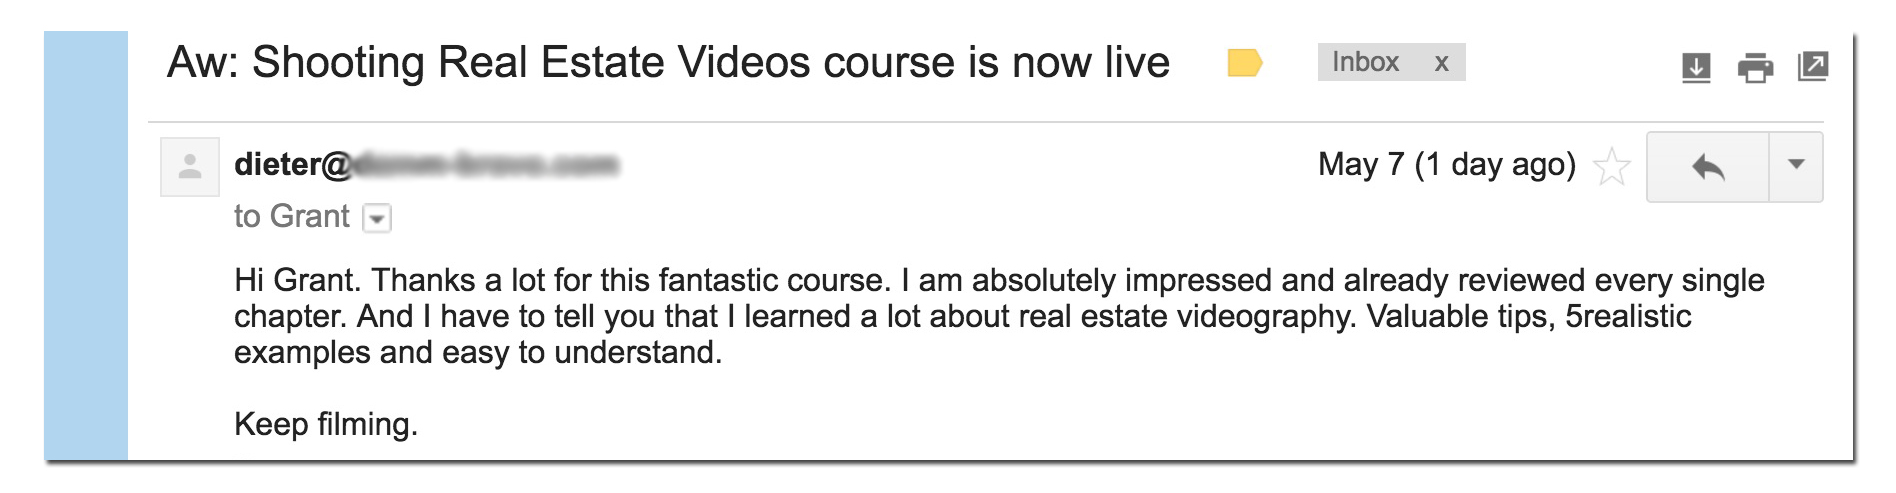 How to Shoot Real Estate Videos course